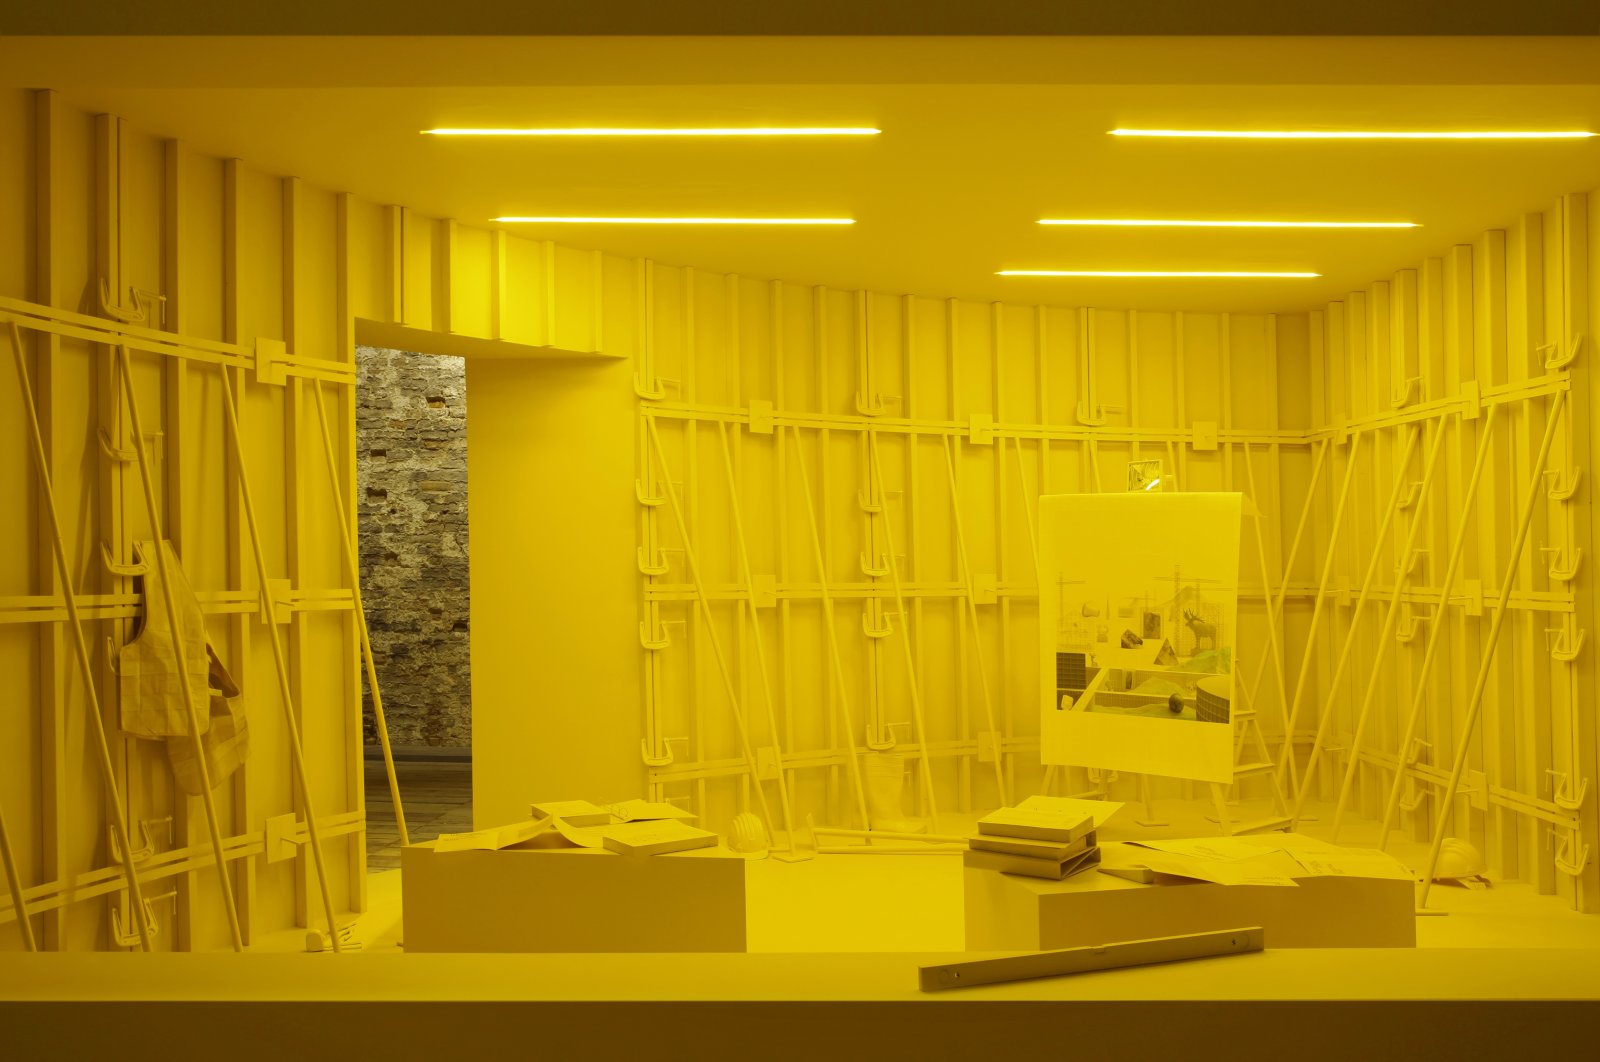 """A view from """"Four Dioramas"""" from """"Architecture as Measure"""" at the Venice Biennale's 17th International Architecture Exhibition. (Courtesy of IKSV)"""